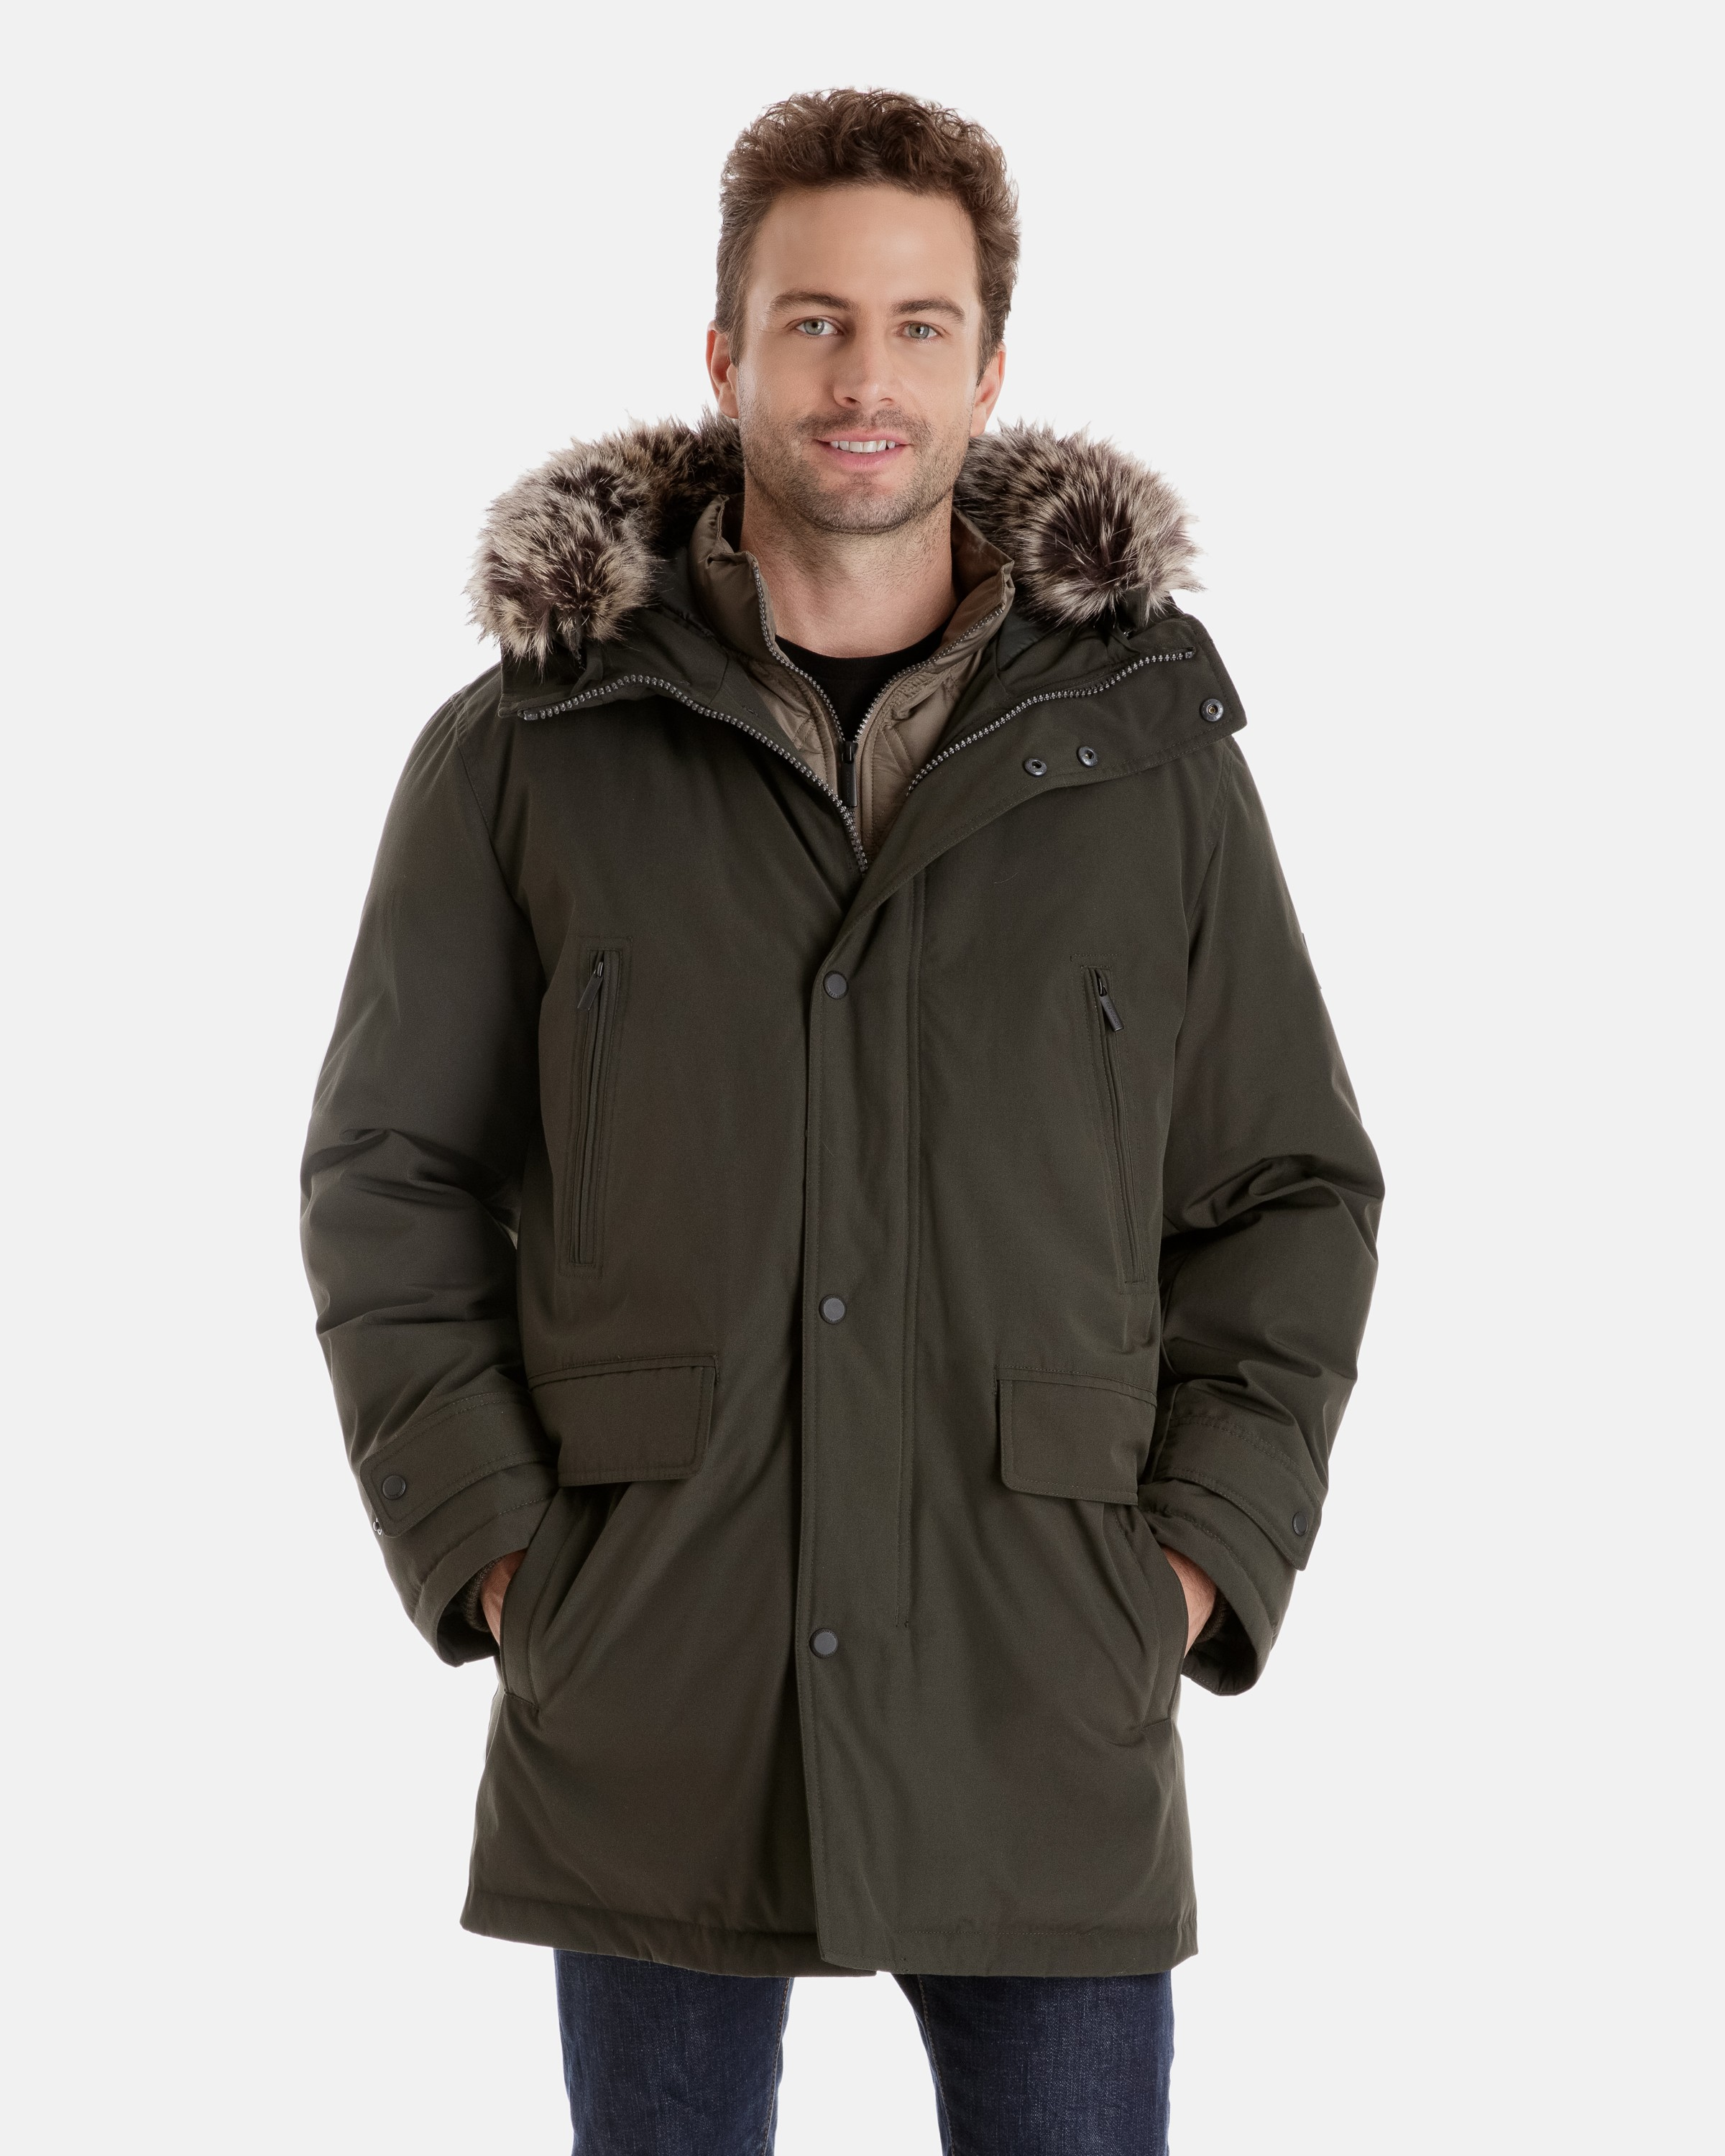 The cool mens winter coats - fashionarrow.com